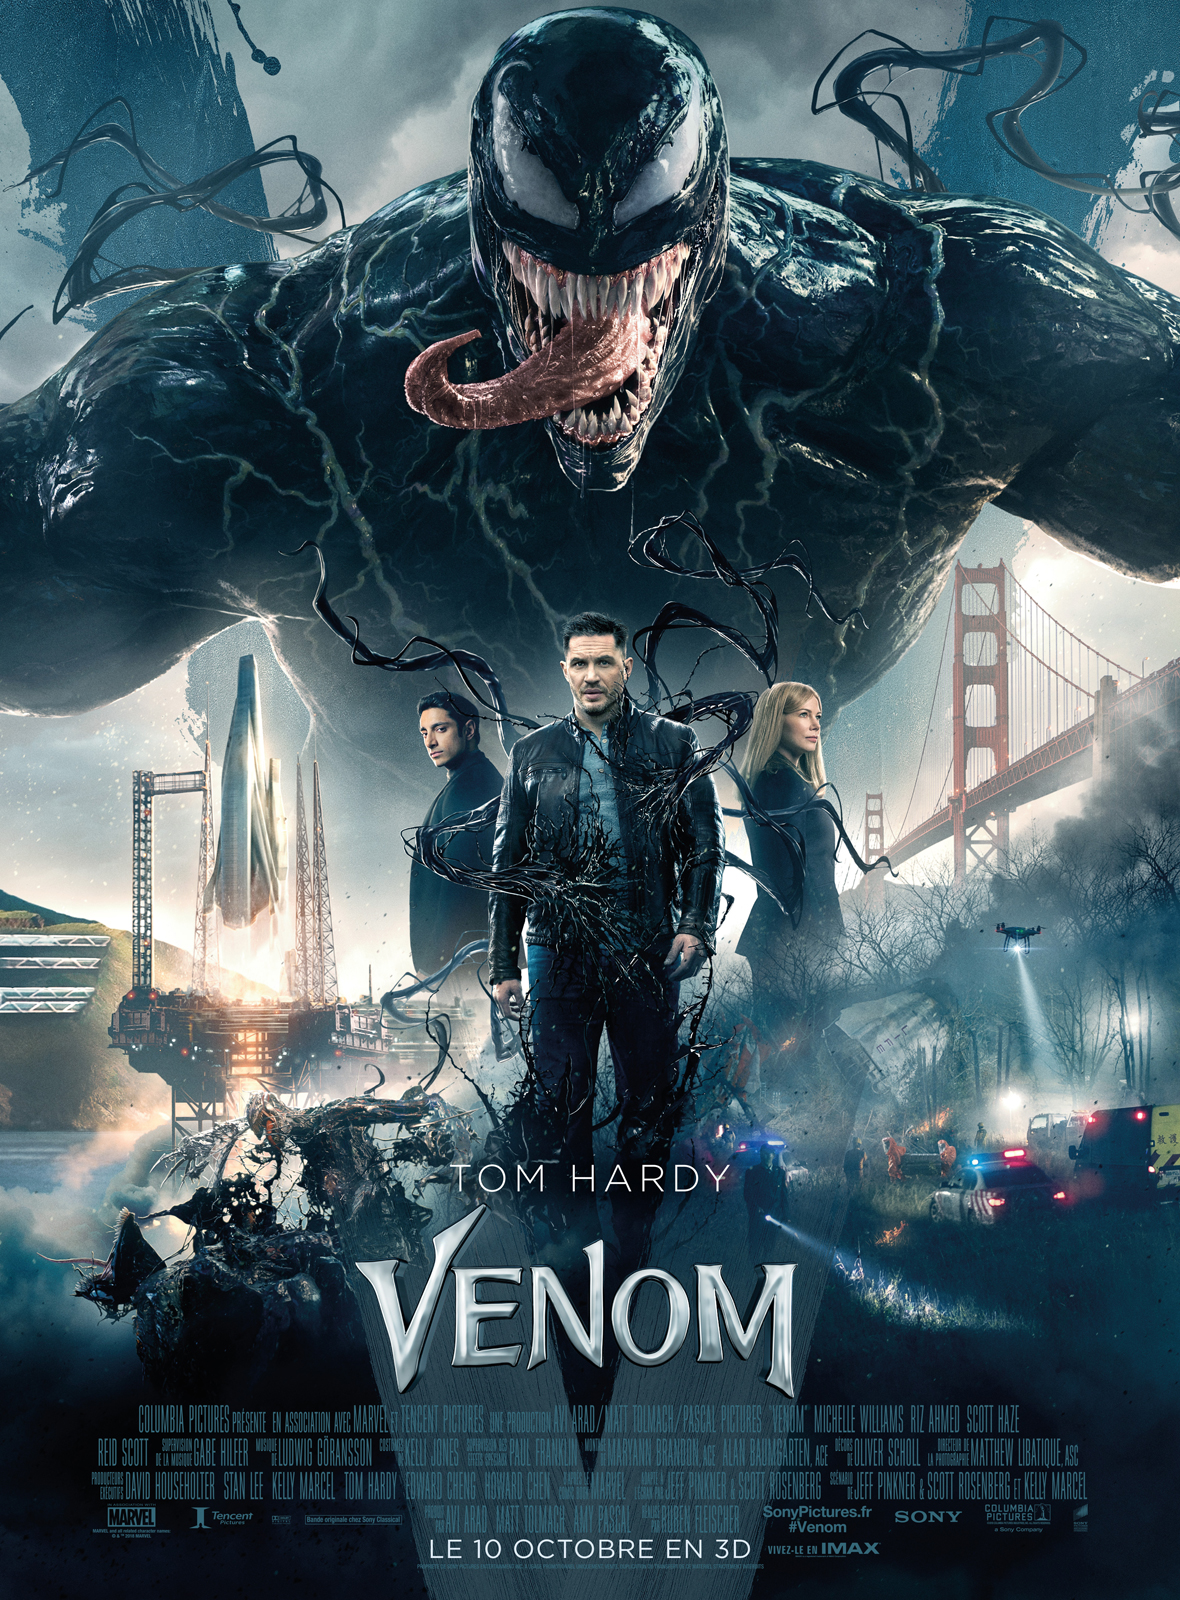 Venom film, Tom Hardy, Marvel